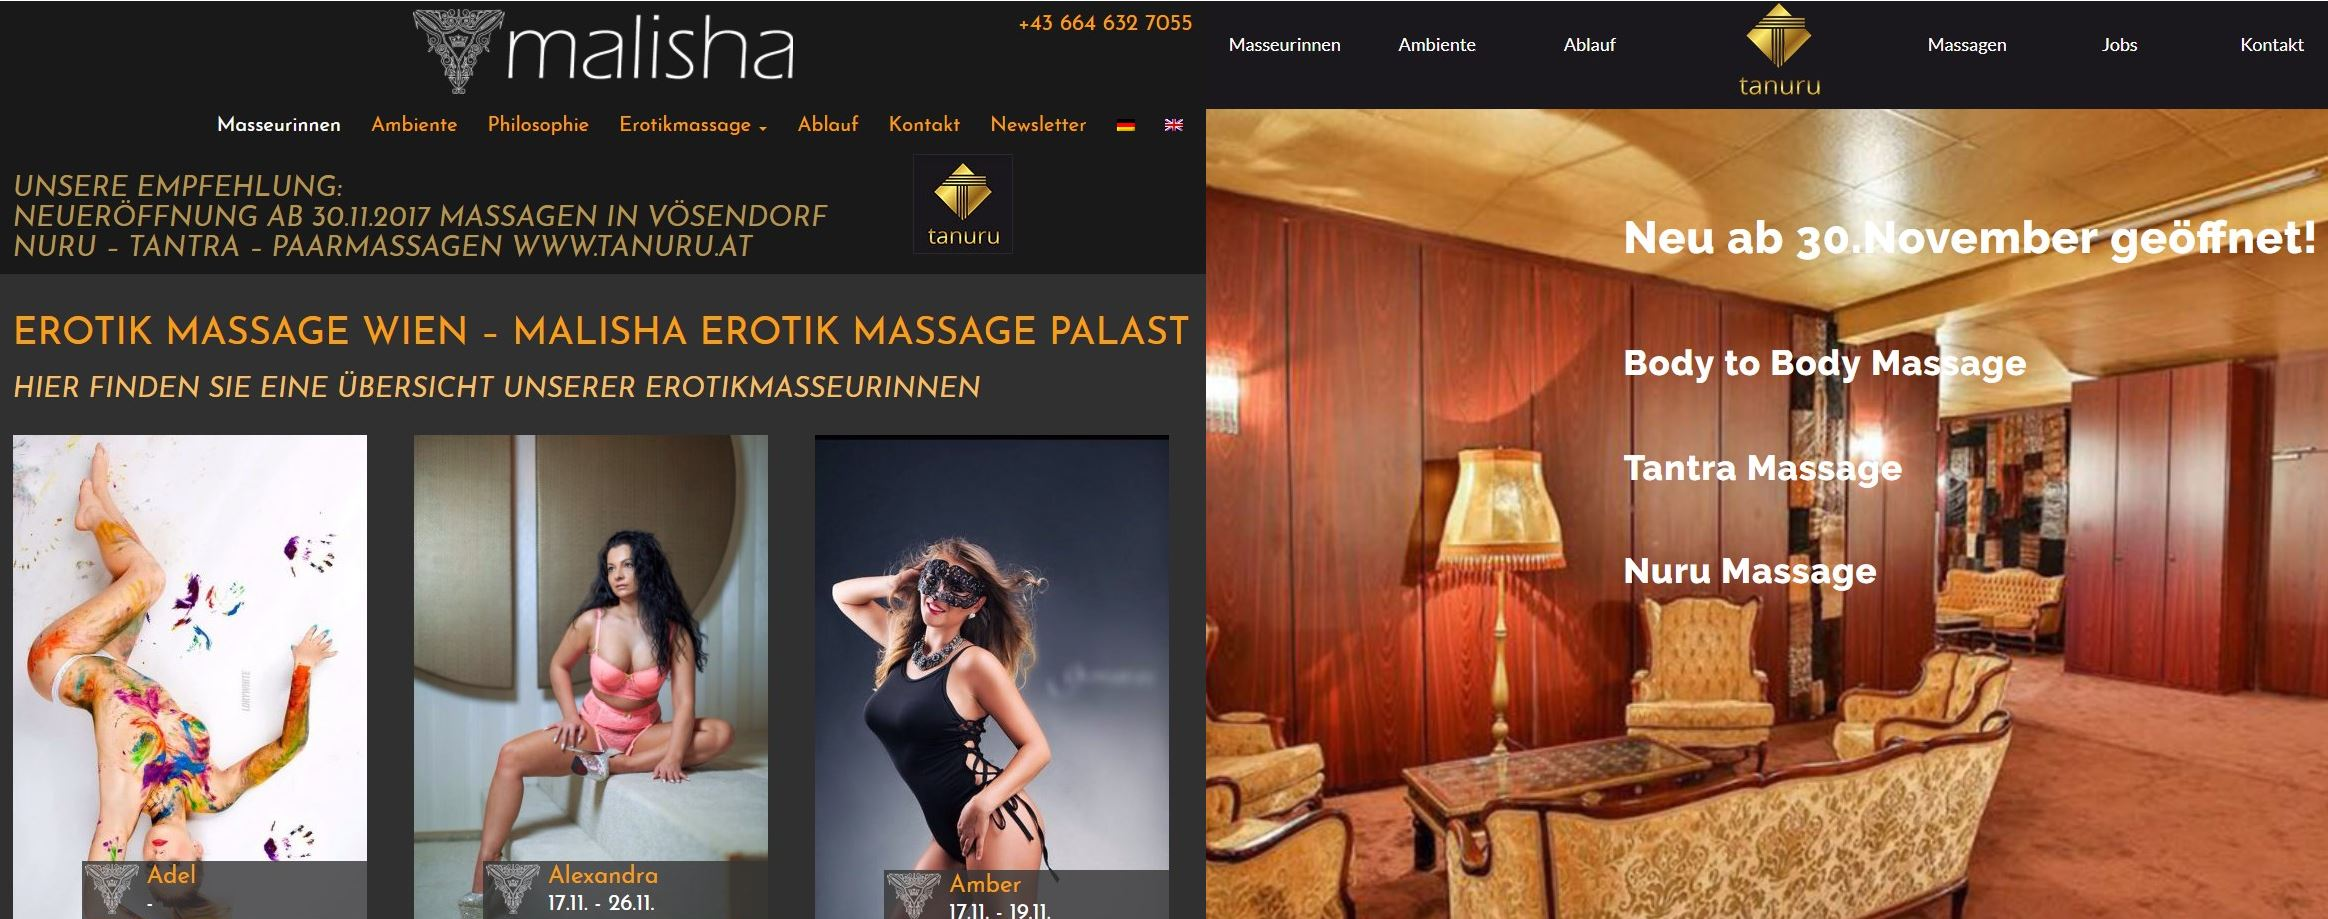 malisha tanuru massage vienna